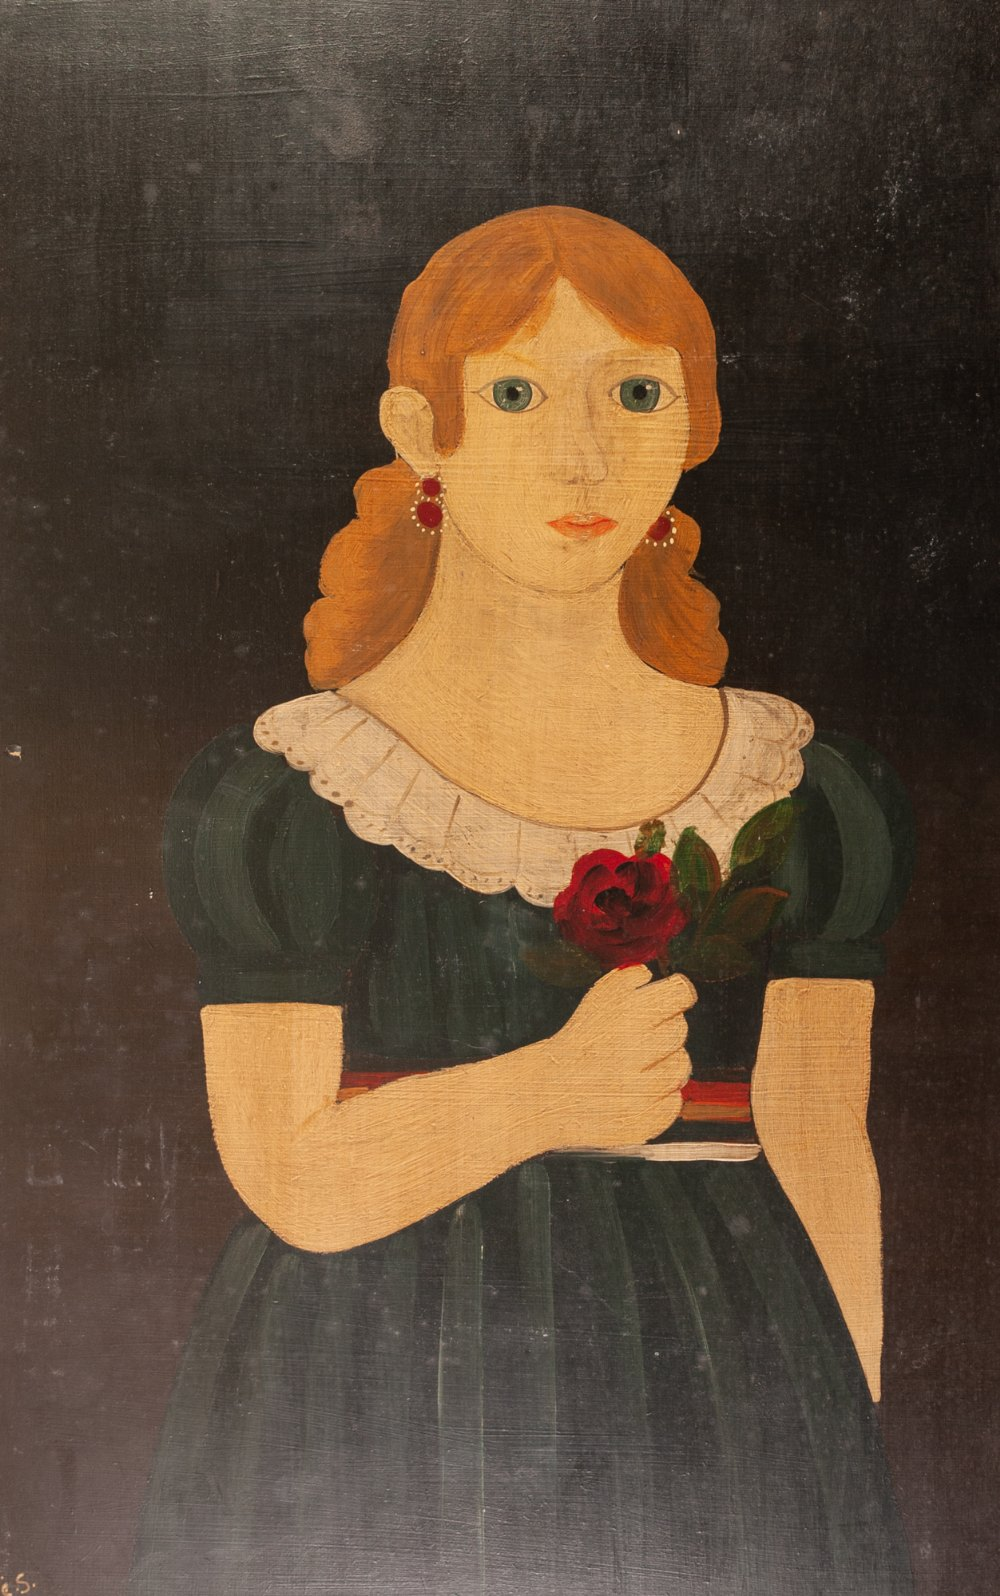 Lot 245 - MODERN PASTICHE OIL PAINTING ON PANEL Primitive three quarter length portrait of a young woman